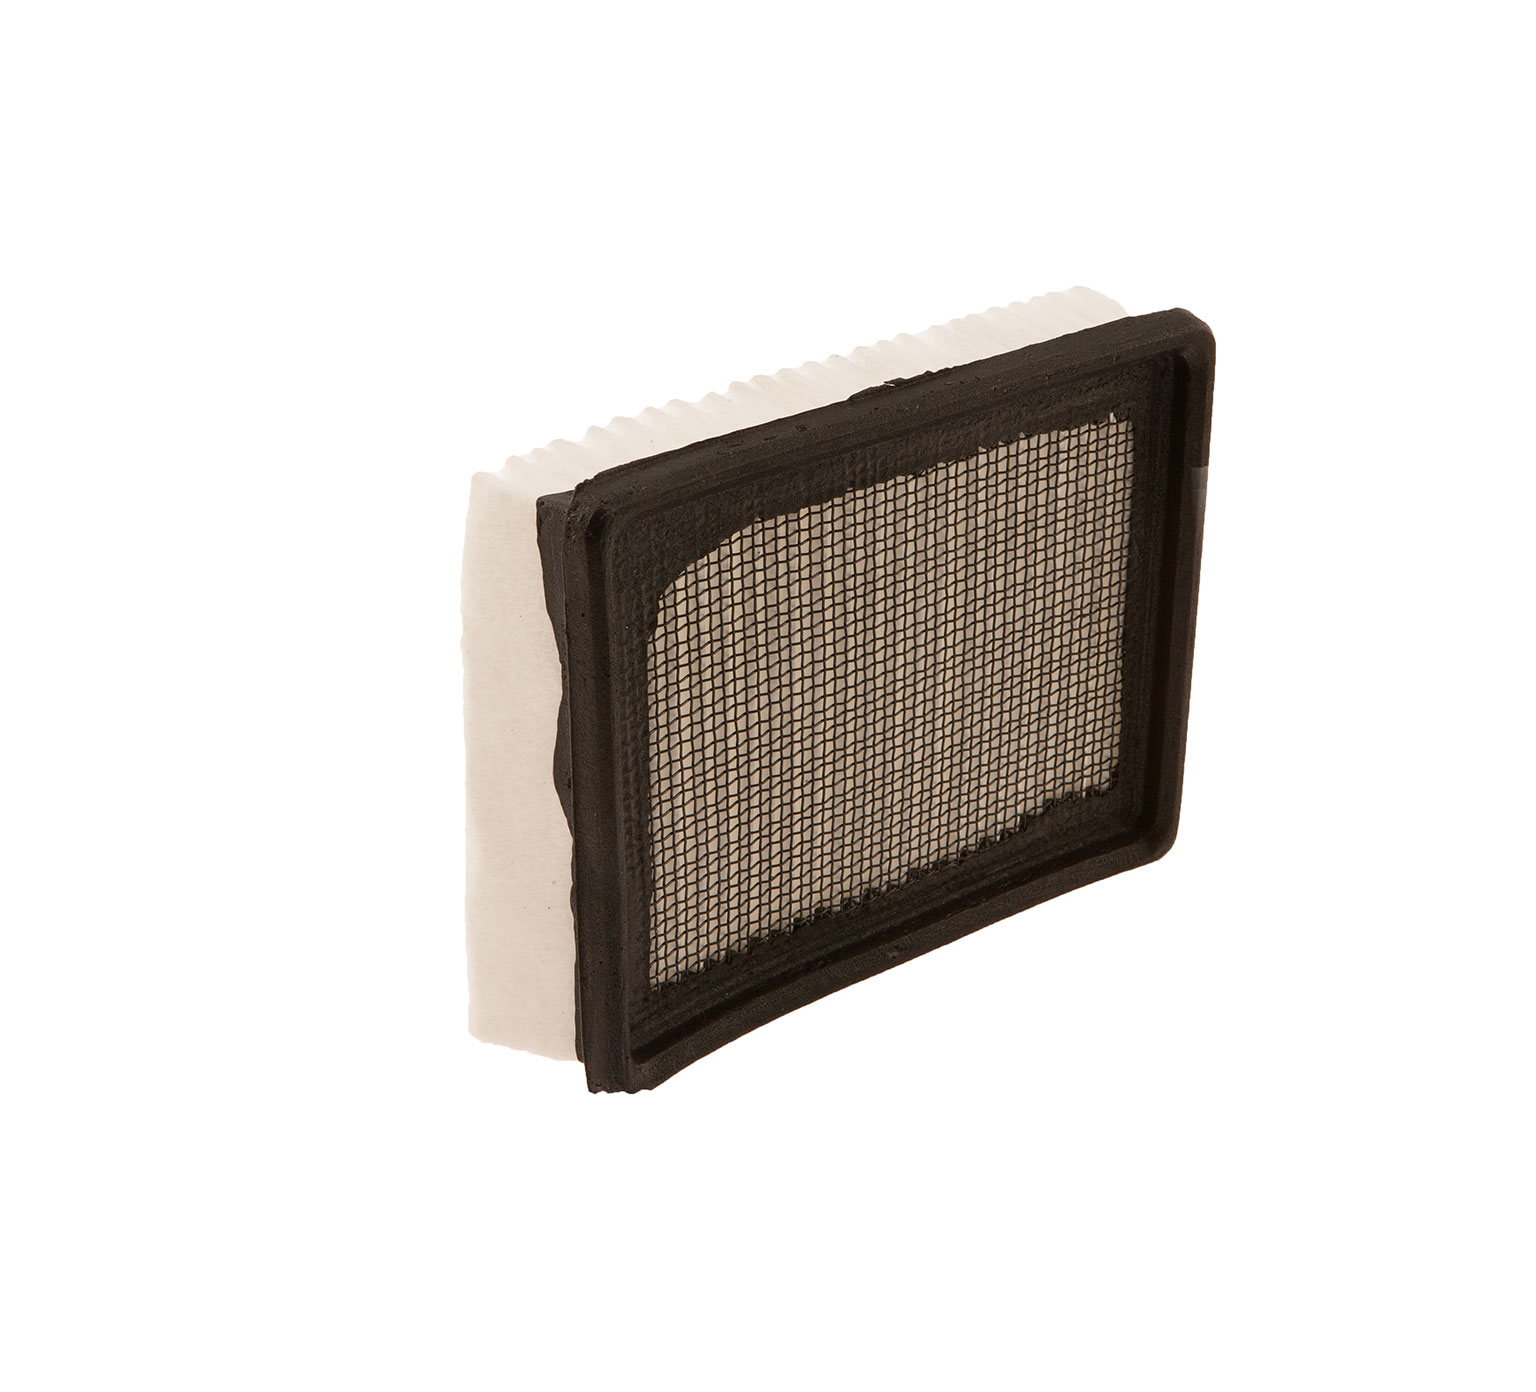 1037822 Cellulose Fiber Dust Panel Filter – 2 x 6.1 x 7.6 in alt 1